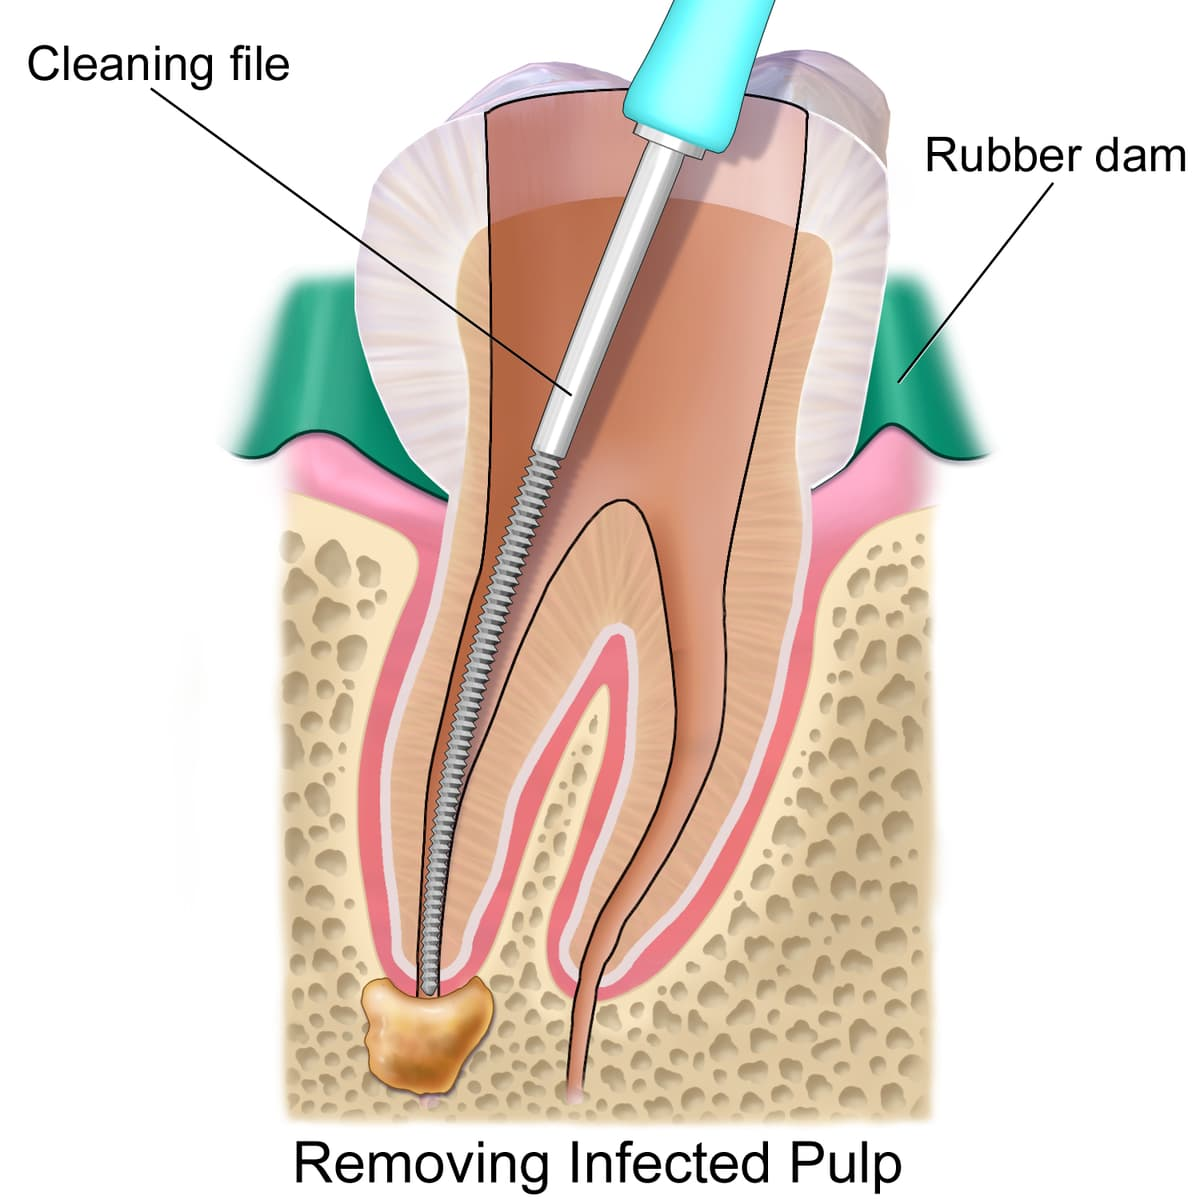 the root canal treatment process